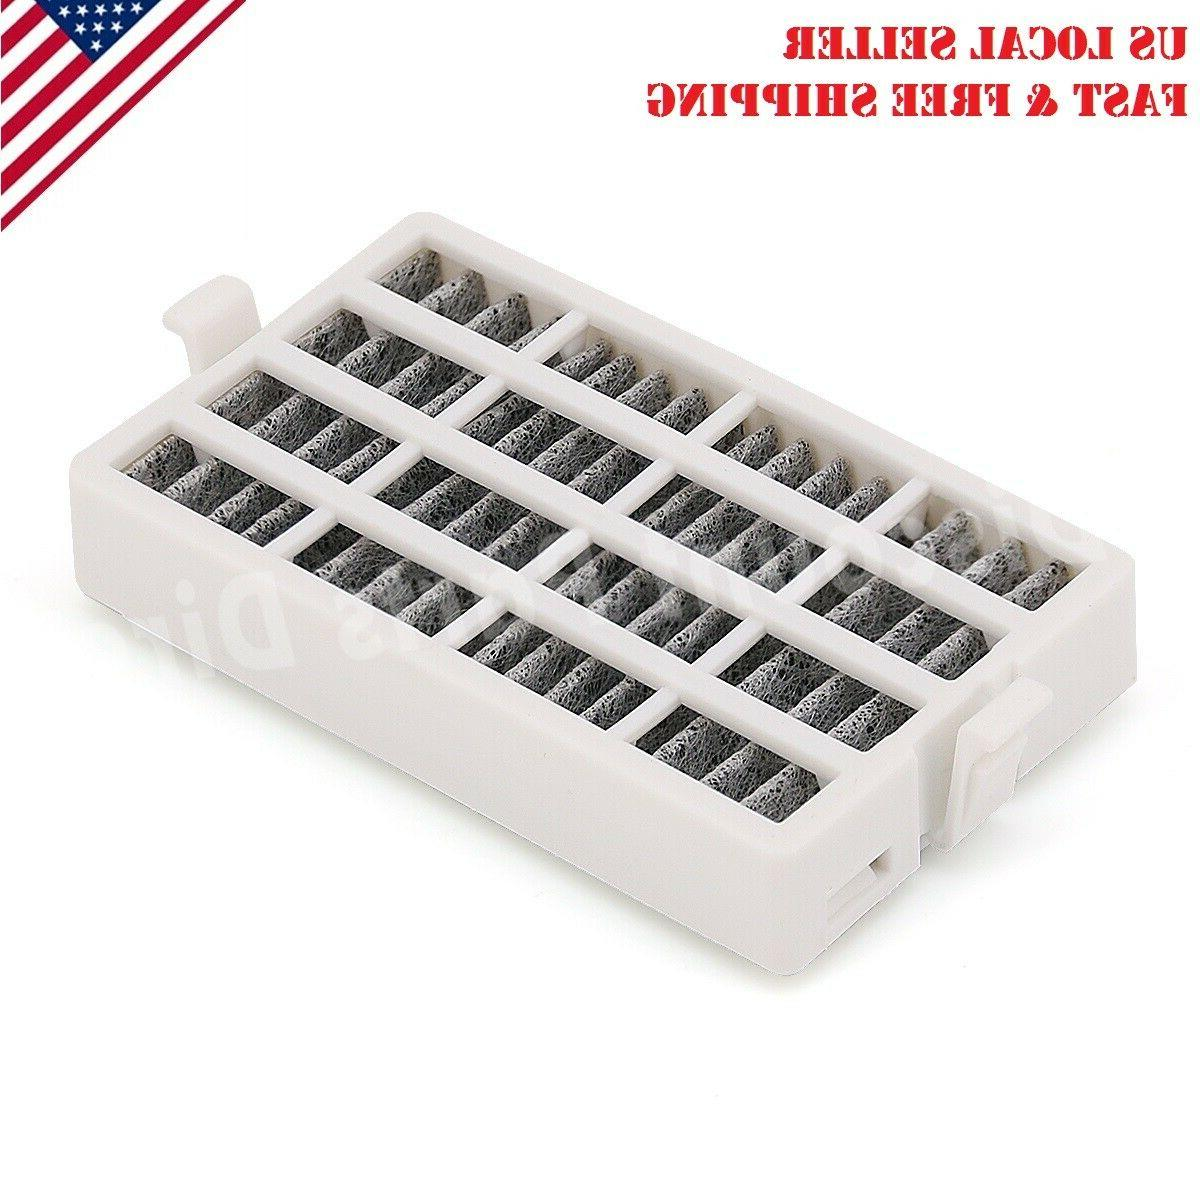 w10311524 air filter replacement for refrigerator fresh